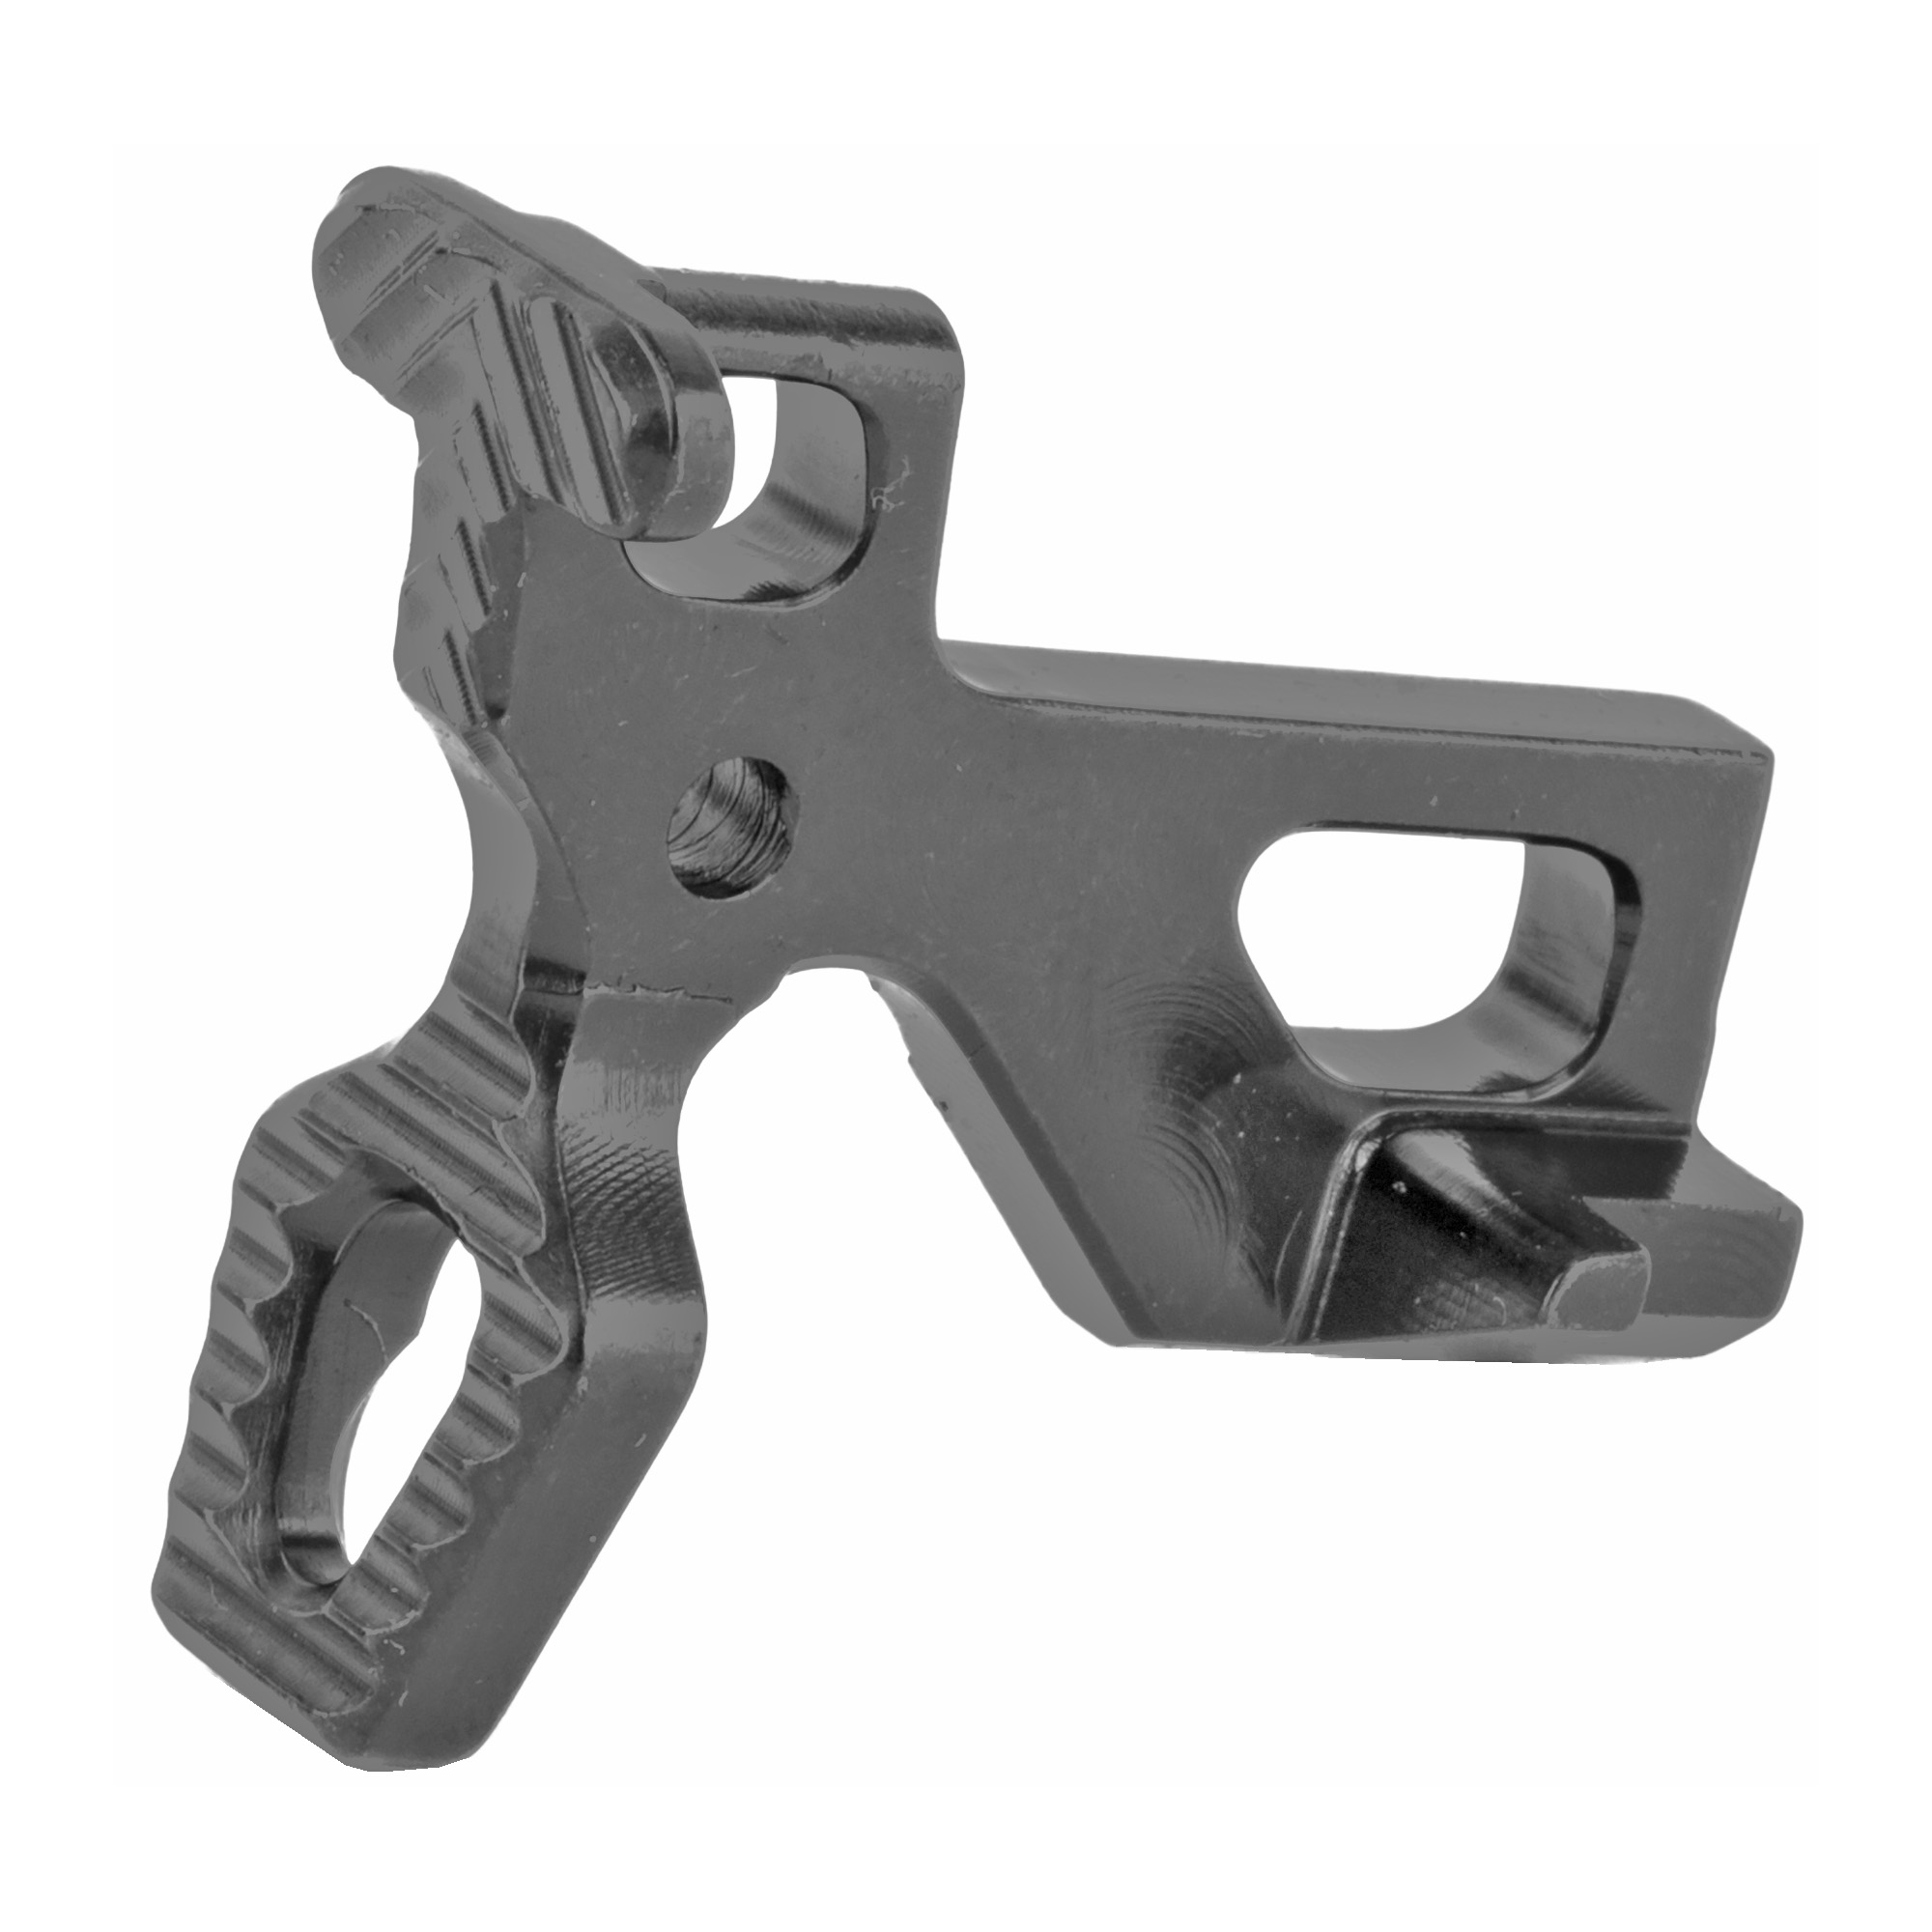 Bad Enhanced Bolt Catch Blk